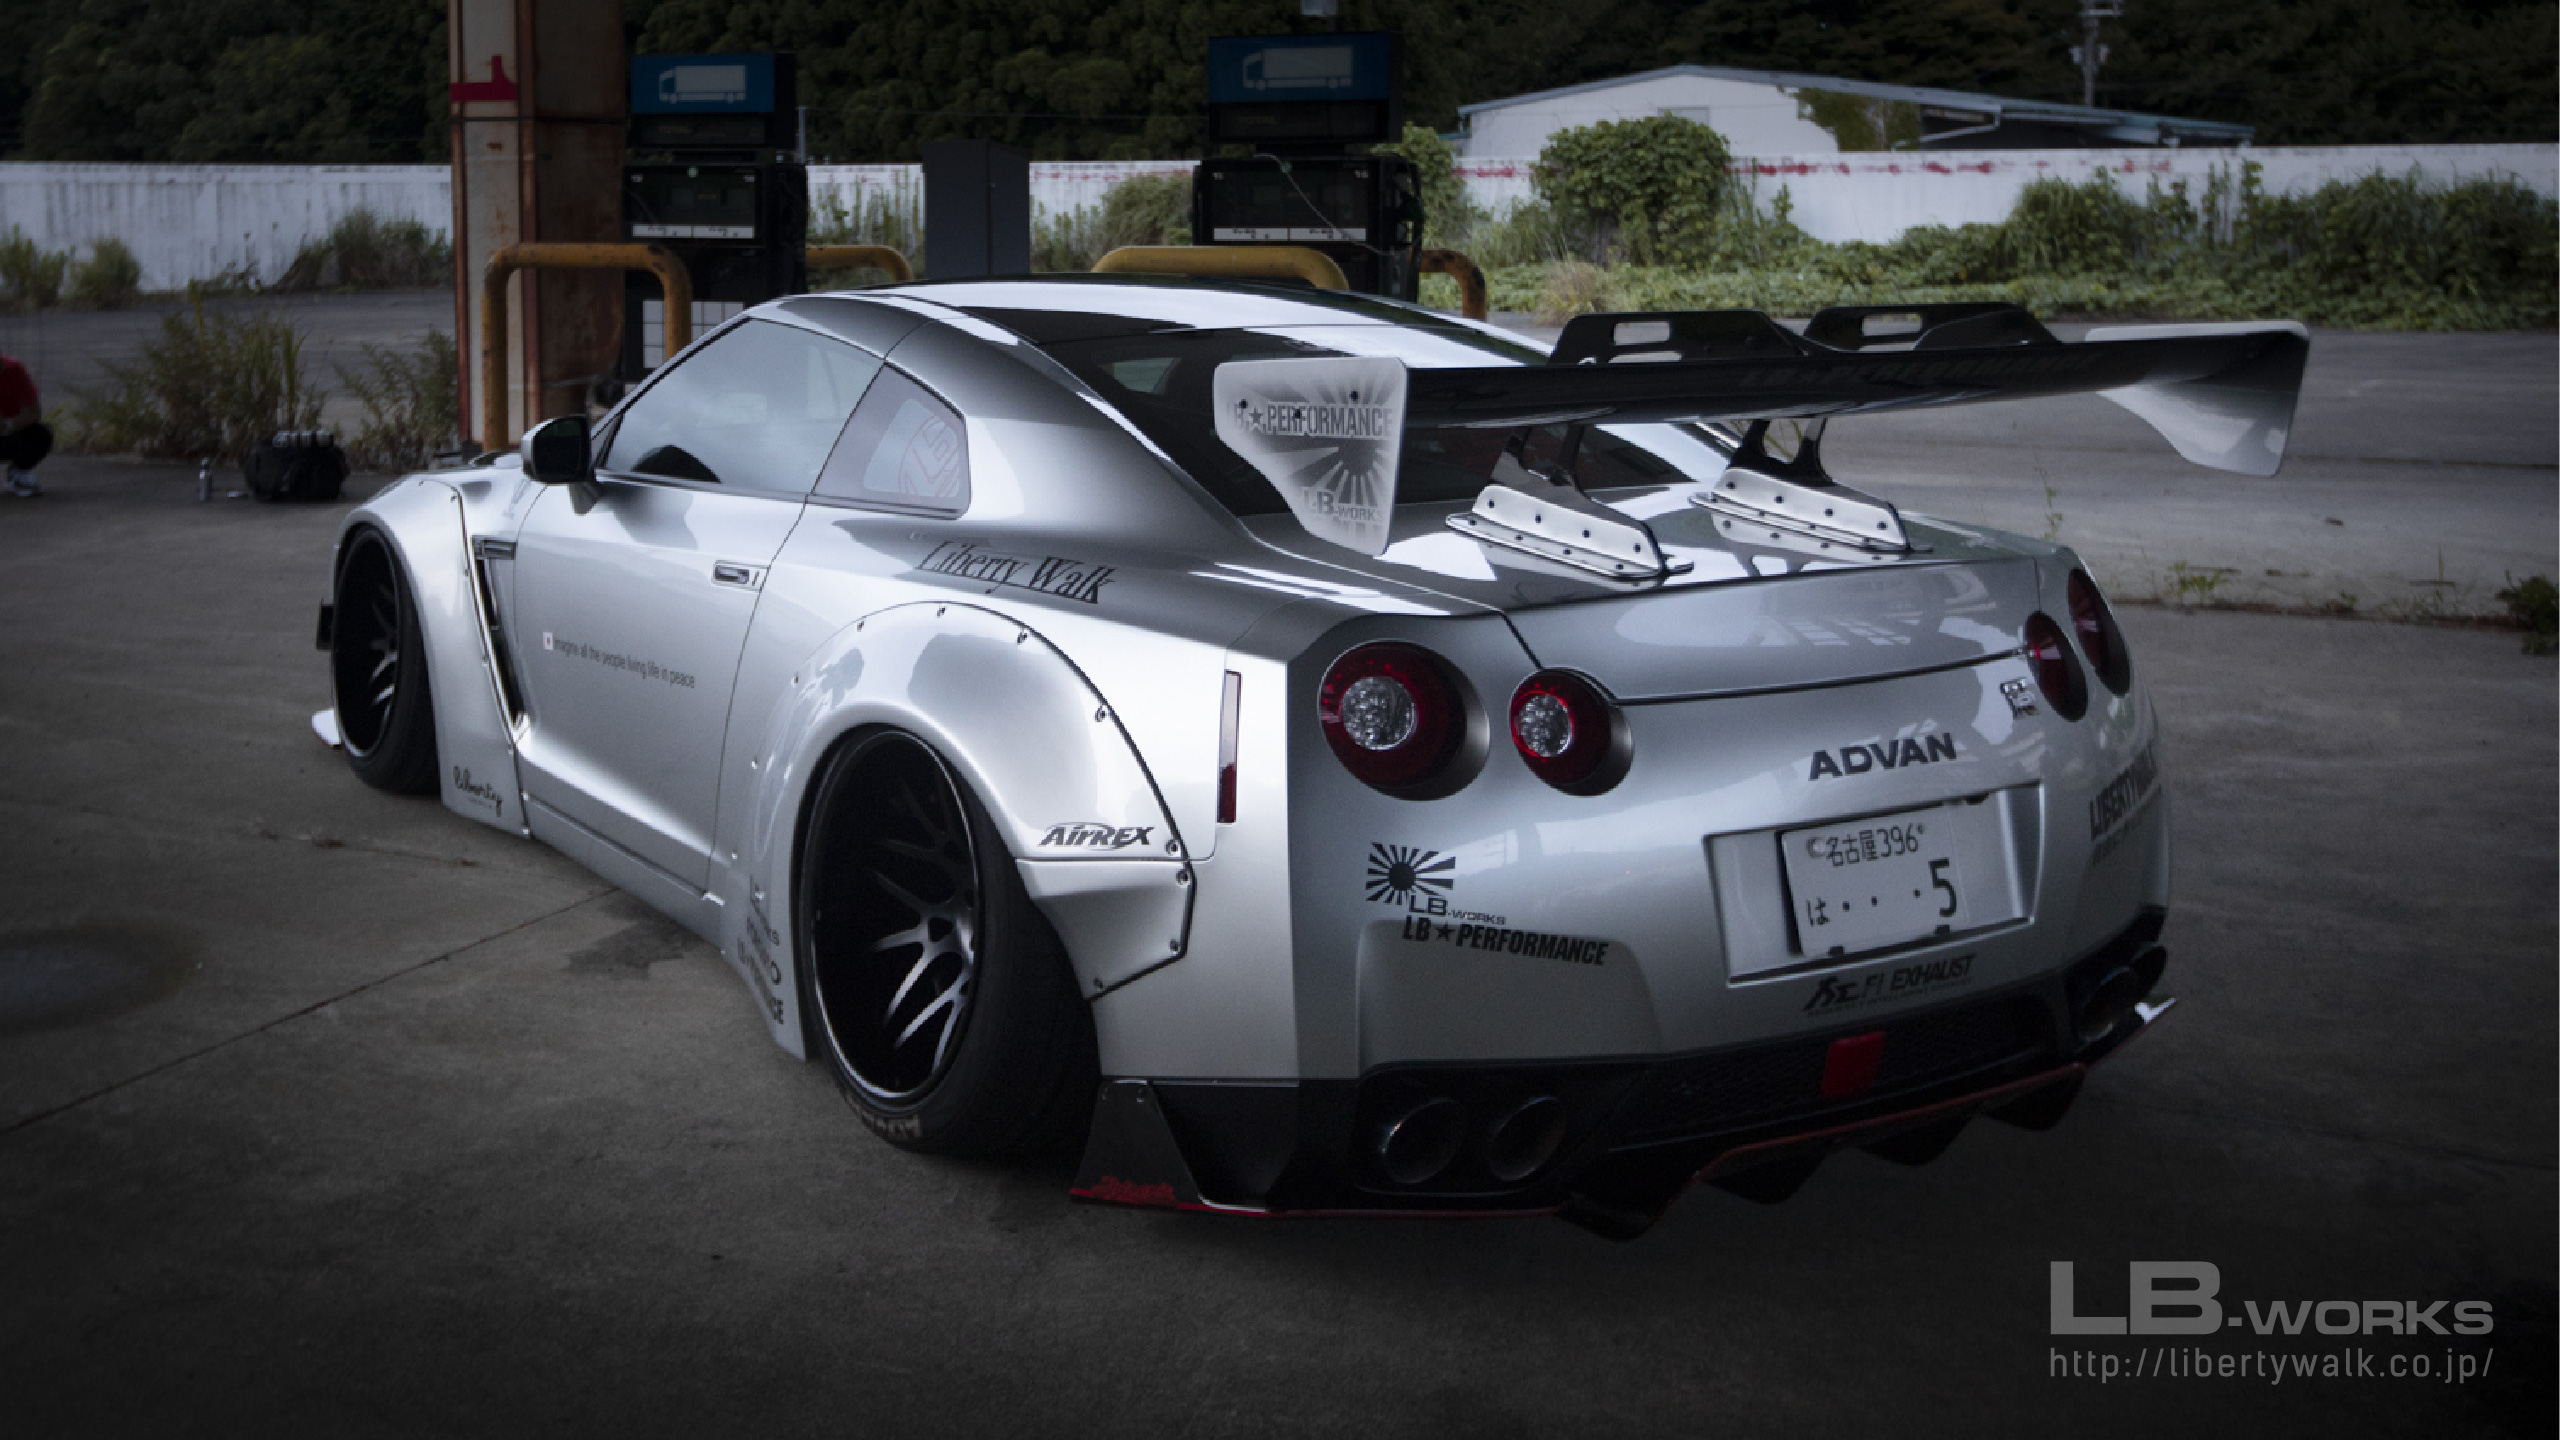 16-80 LB-WORKS NISSAN GT-R R35 type 1.5